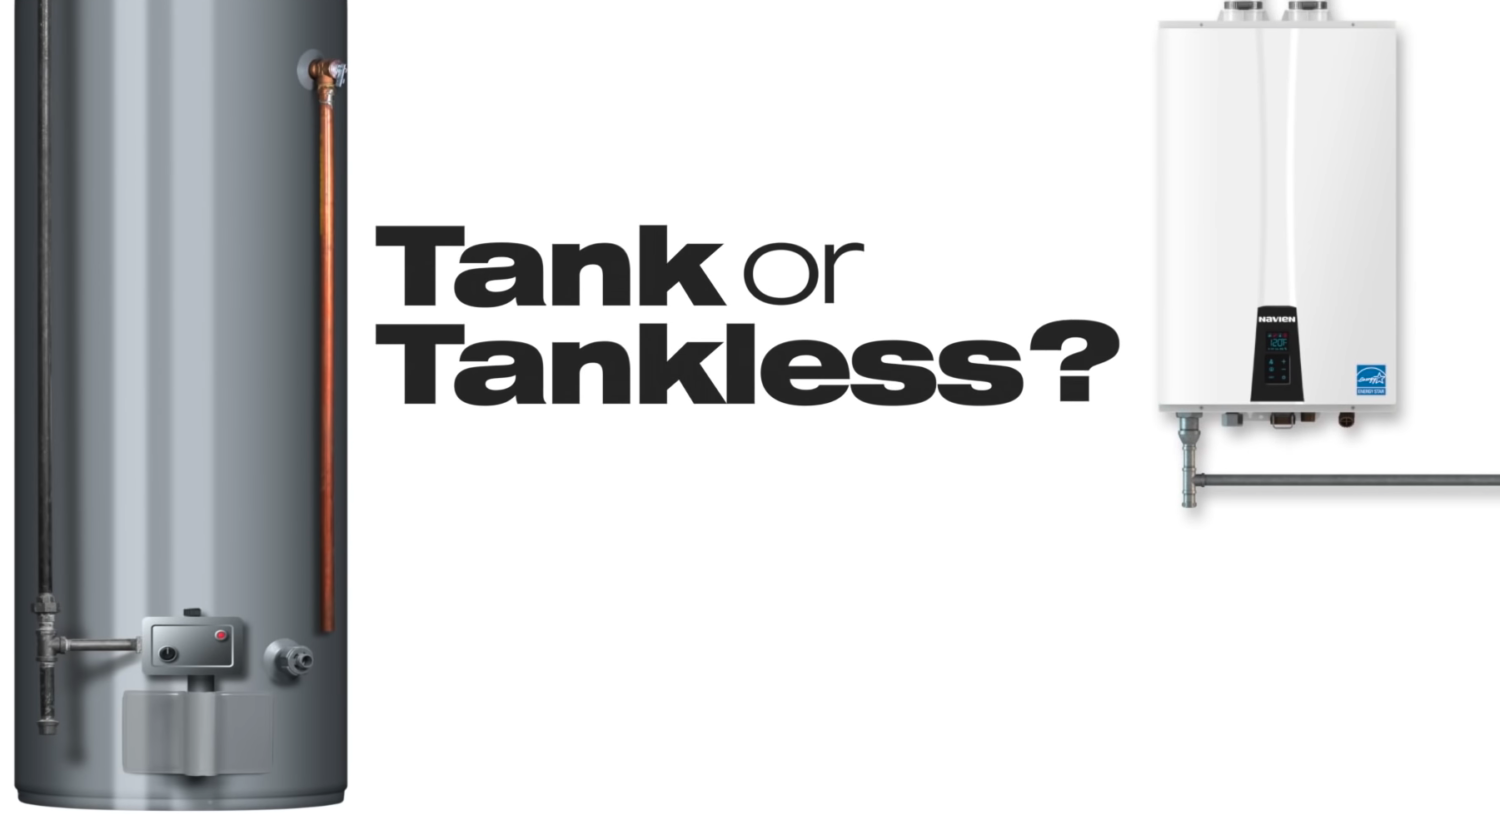 Do I Need a Tank or Tankless Water Heater?